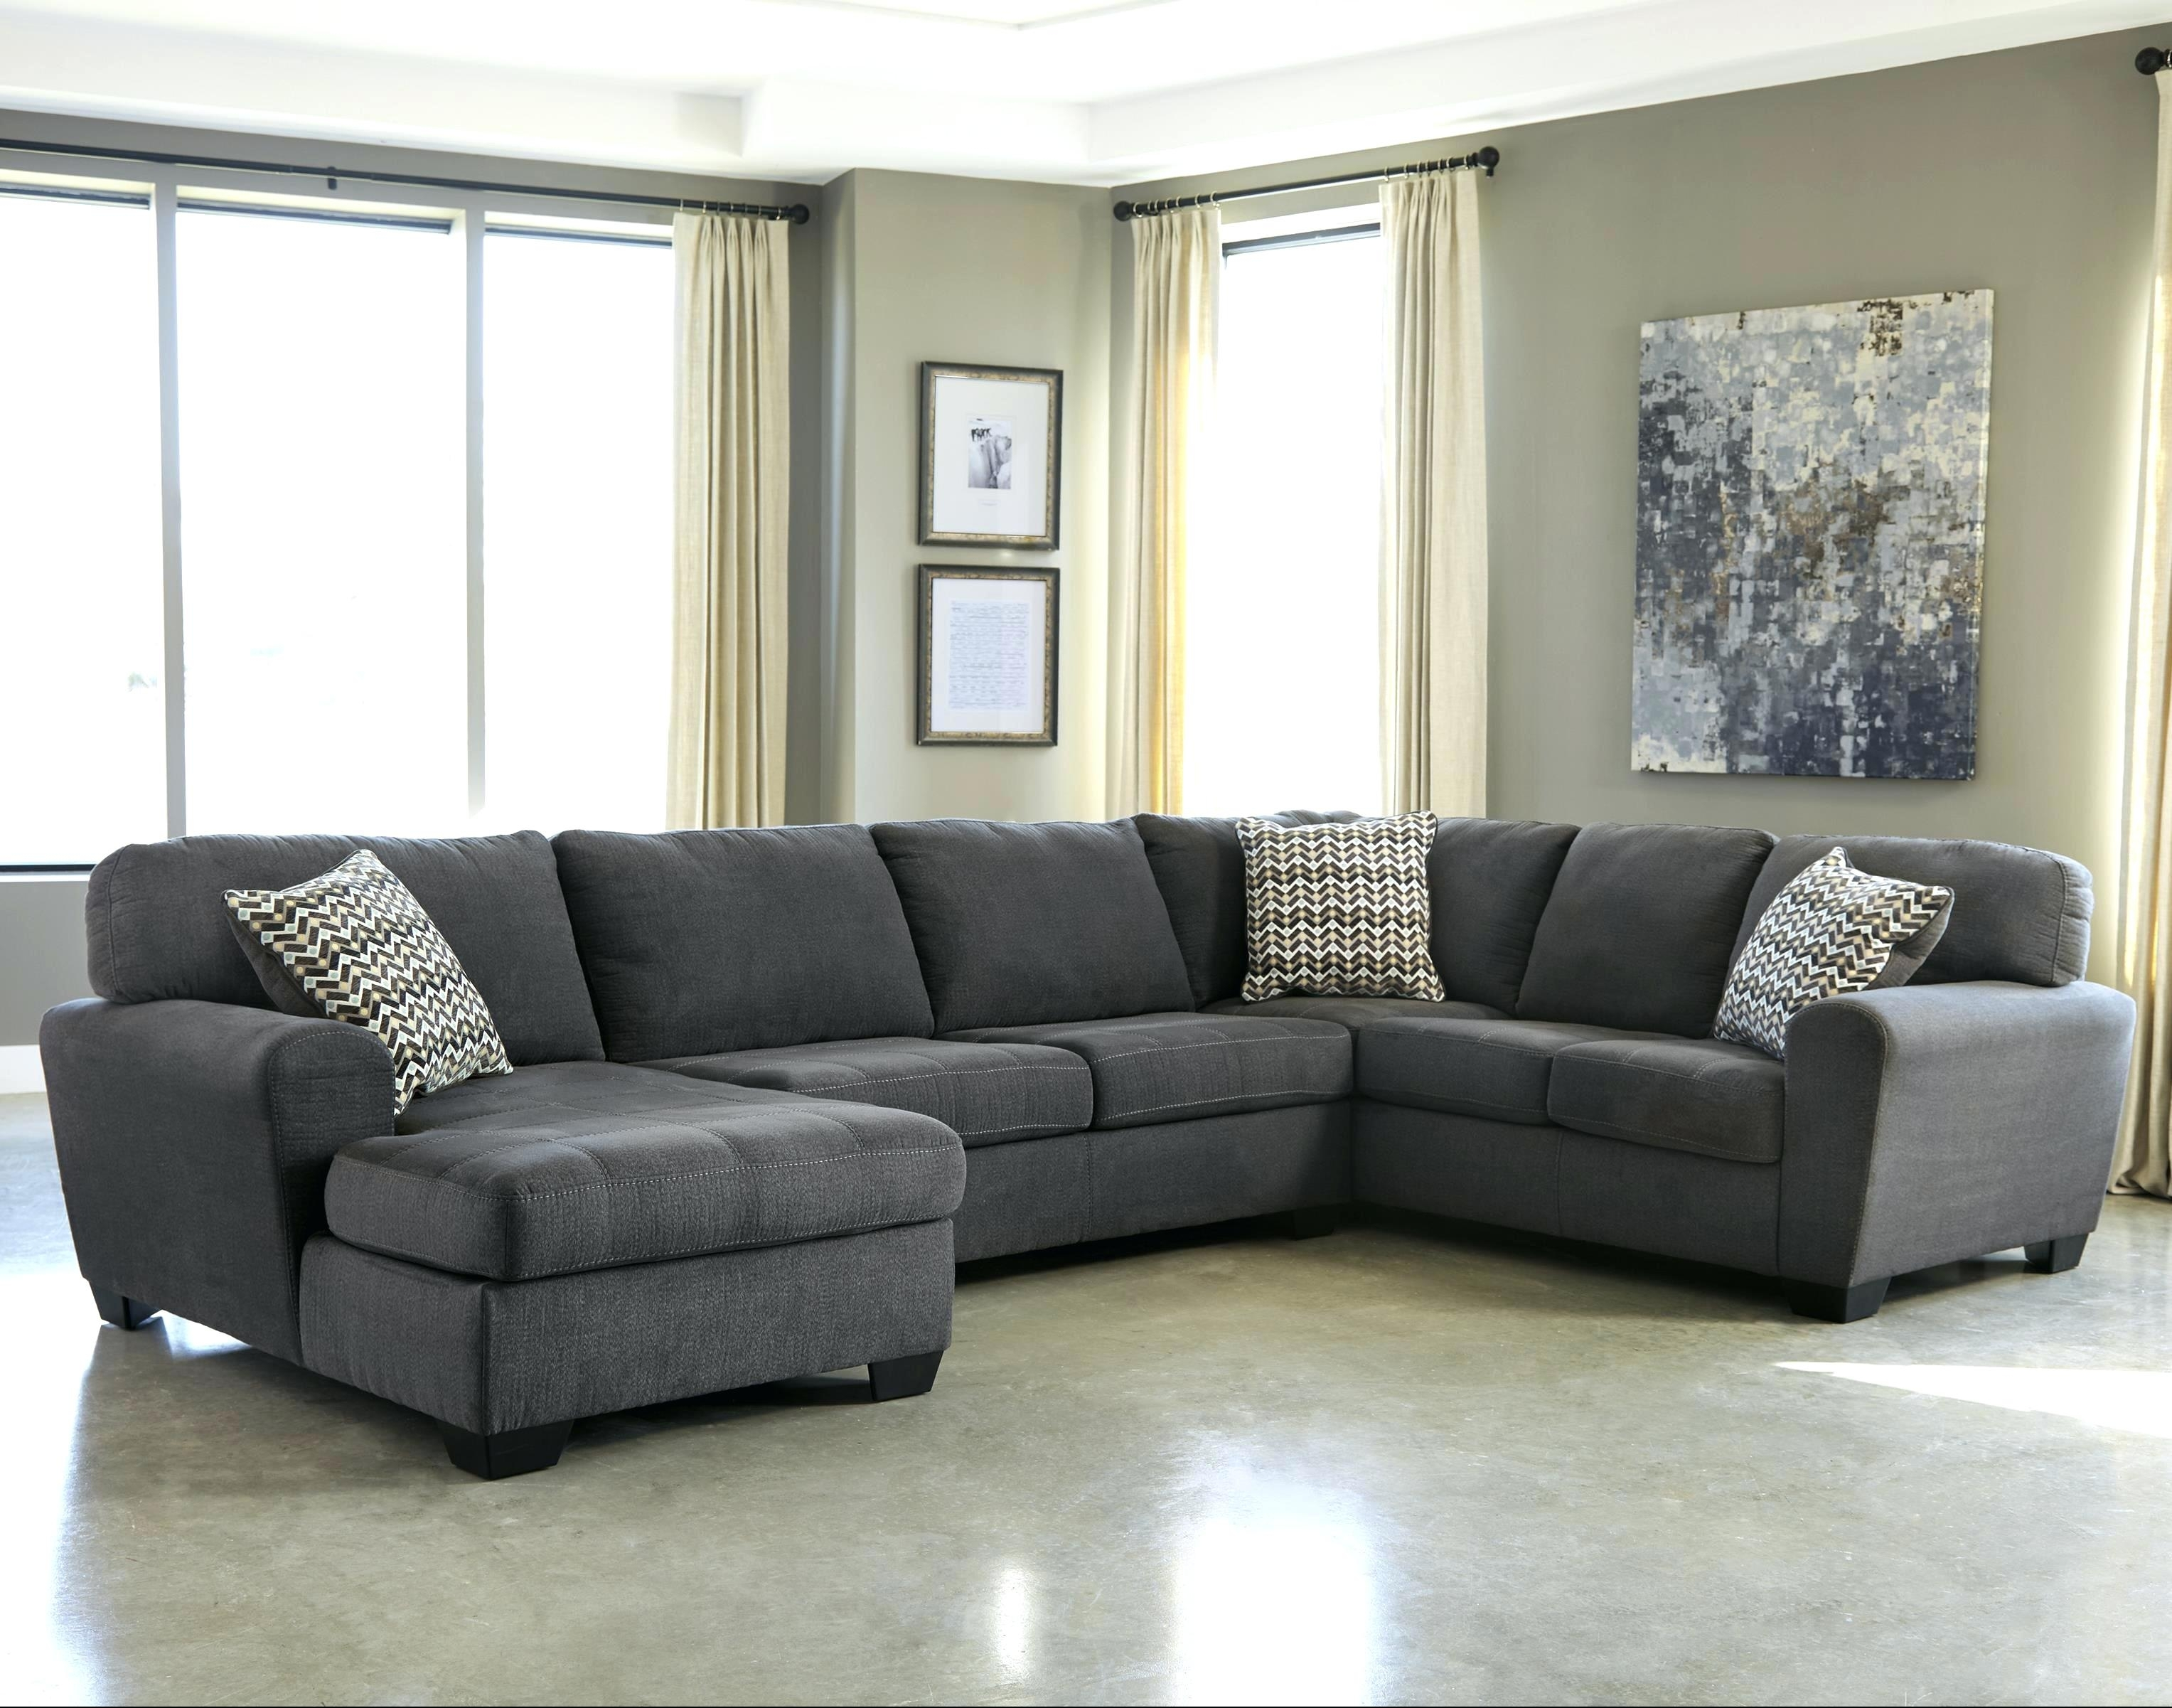 3 Piece Sectional Haven Blue Steel 3 Piece Sectional 3 Pc Reclining With Haven Blue Steel 3 Piece Sectionals (Image 2 of 25)